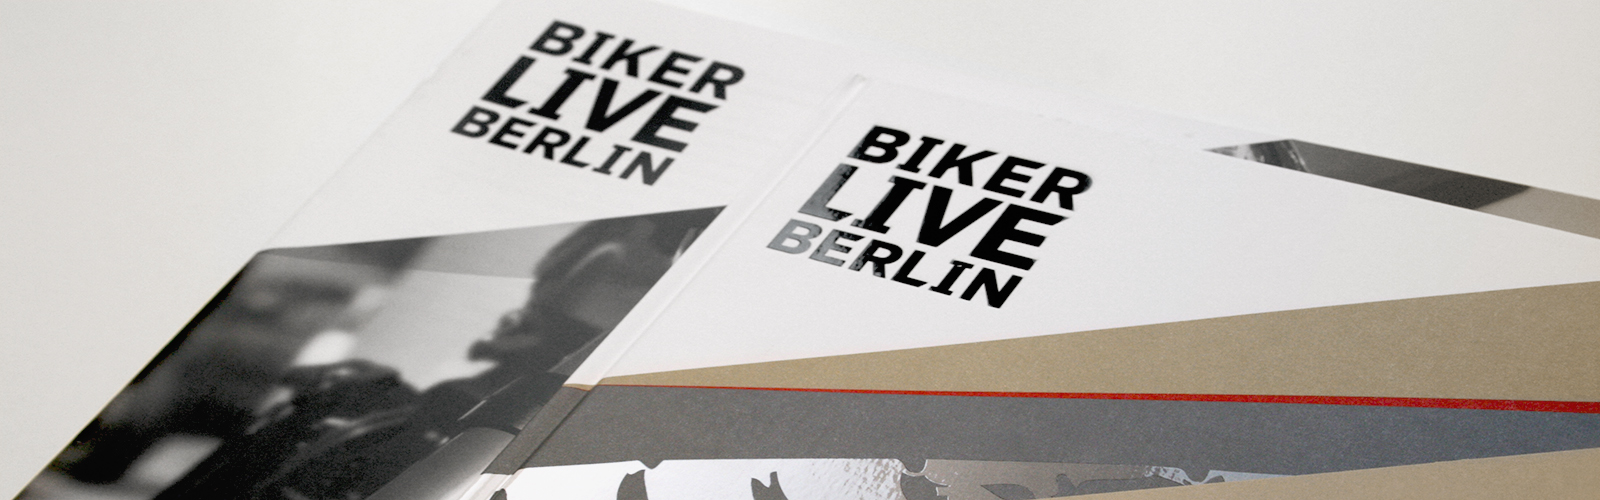 Braunwagner Communication Design ABB Tilke Biker Live Berlin Editorial & Corporate Design 2011